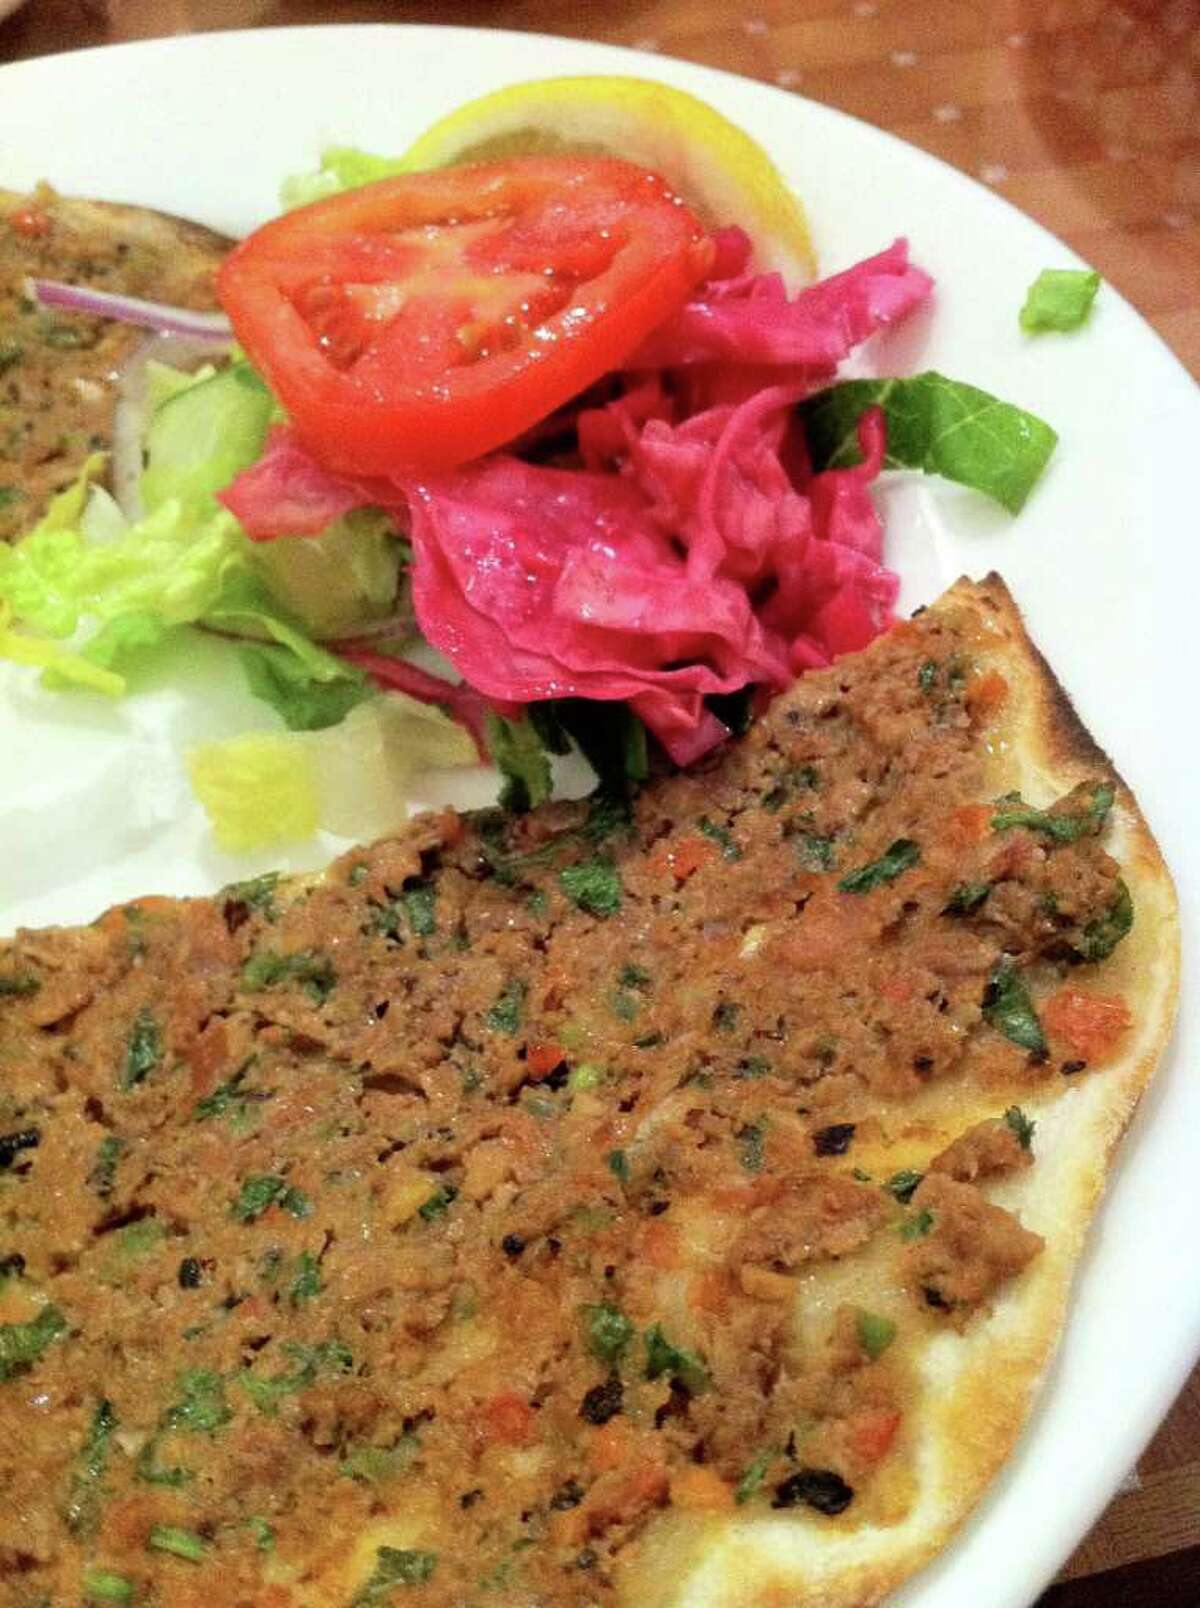 Istanbul Grill's lamacun is made with lamb, pine nuts and pickled cabbage salad.